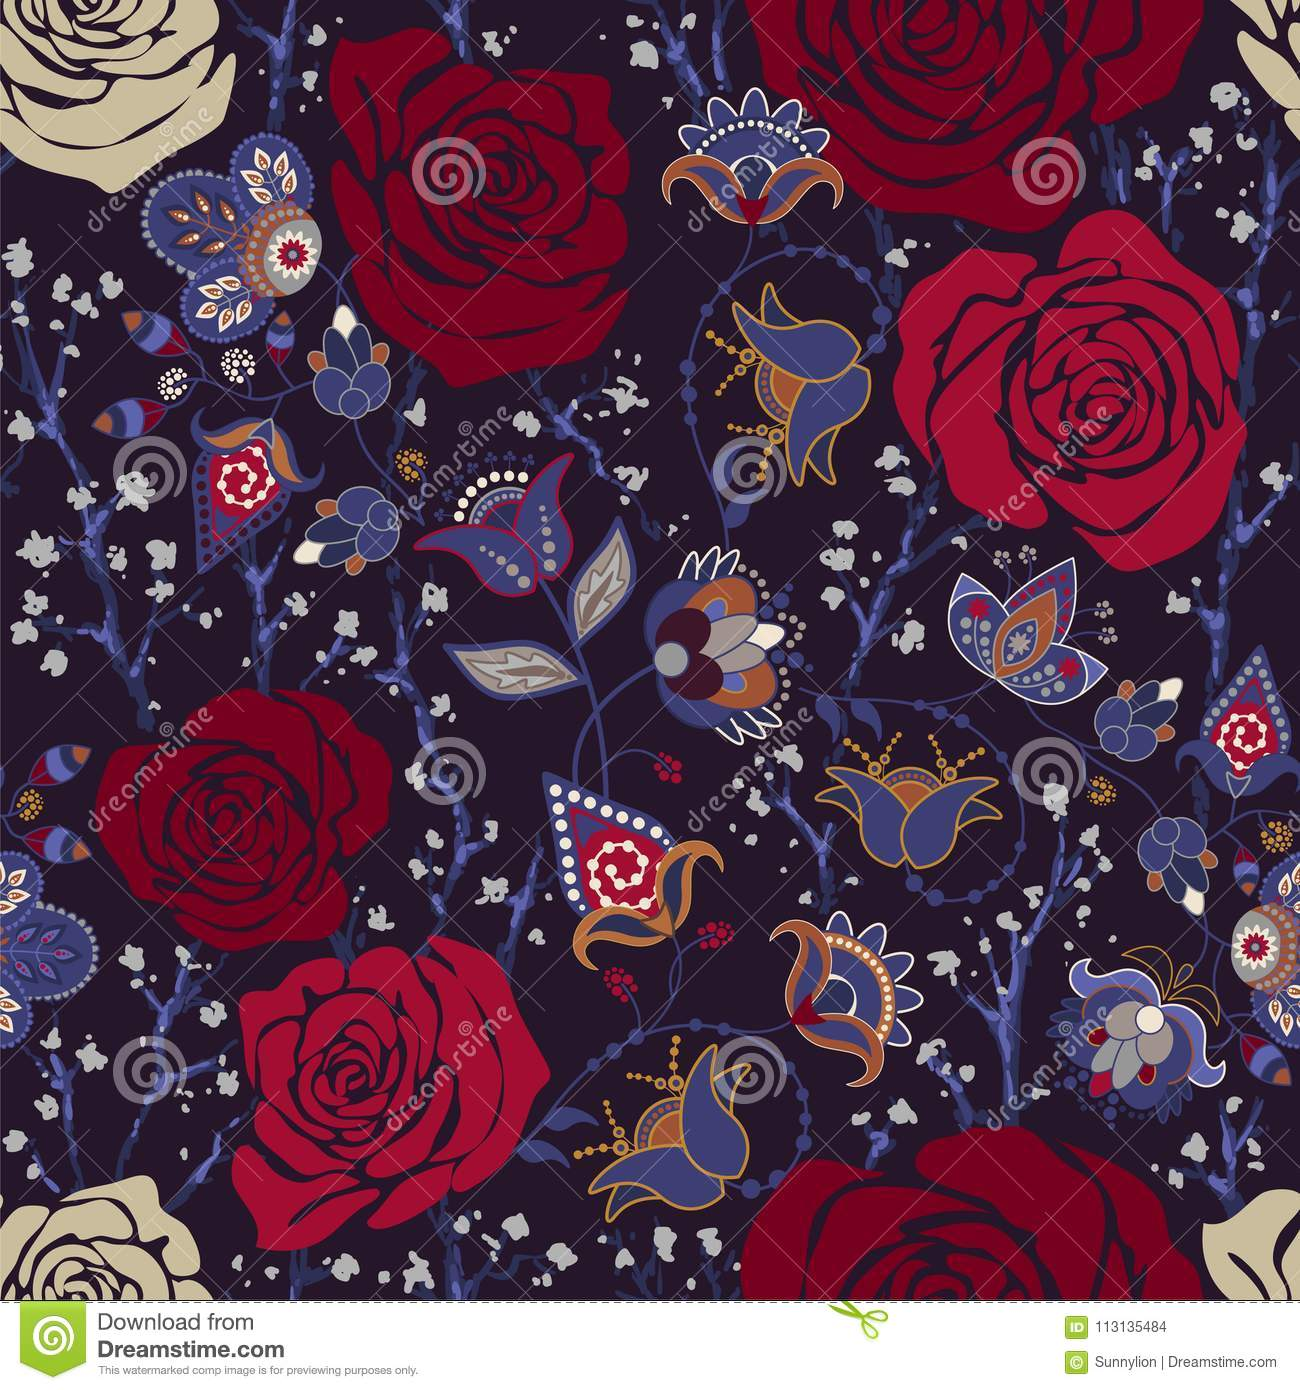 Colorful Pattern With Roses Decorative Flowers Seamless Wallpaper For Iphone Cover